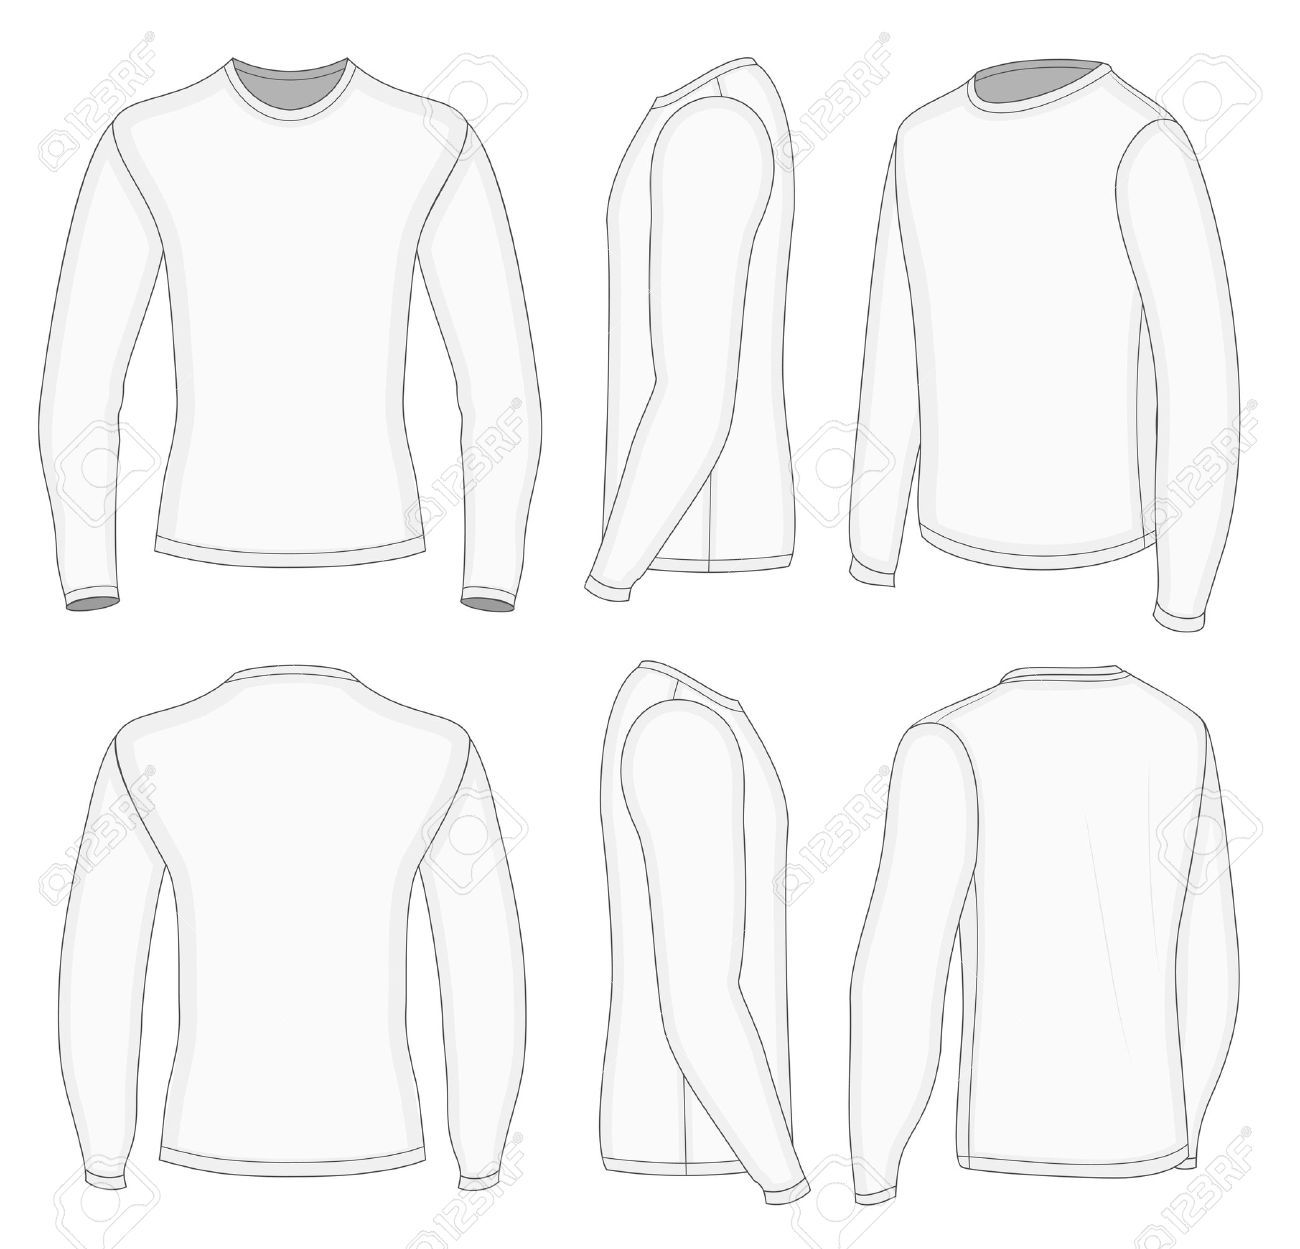 Buy Blank Long Sleeve Shirt Template